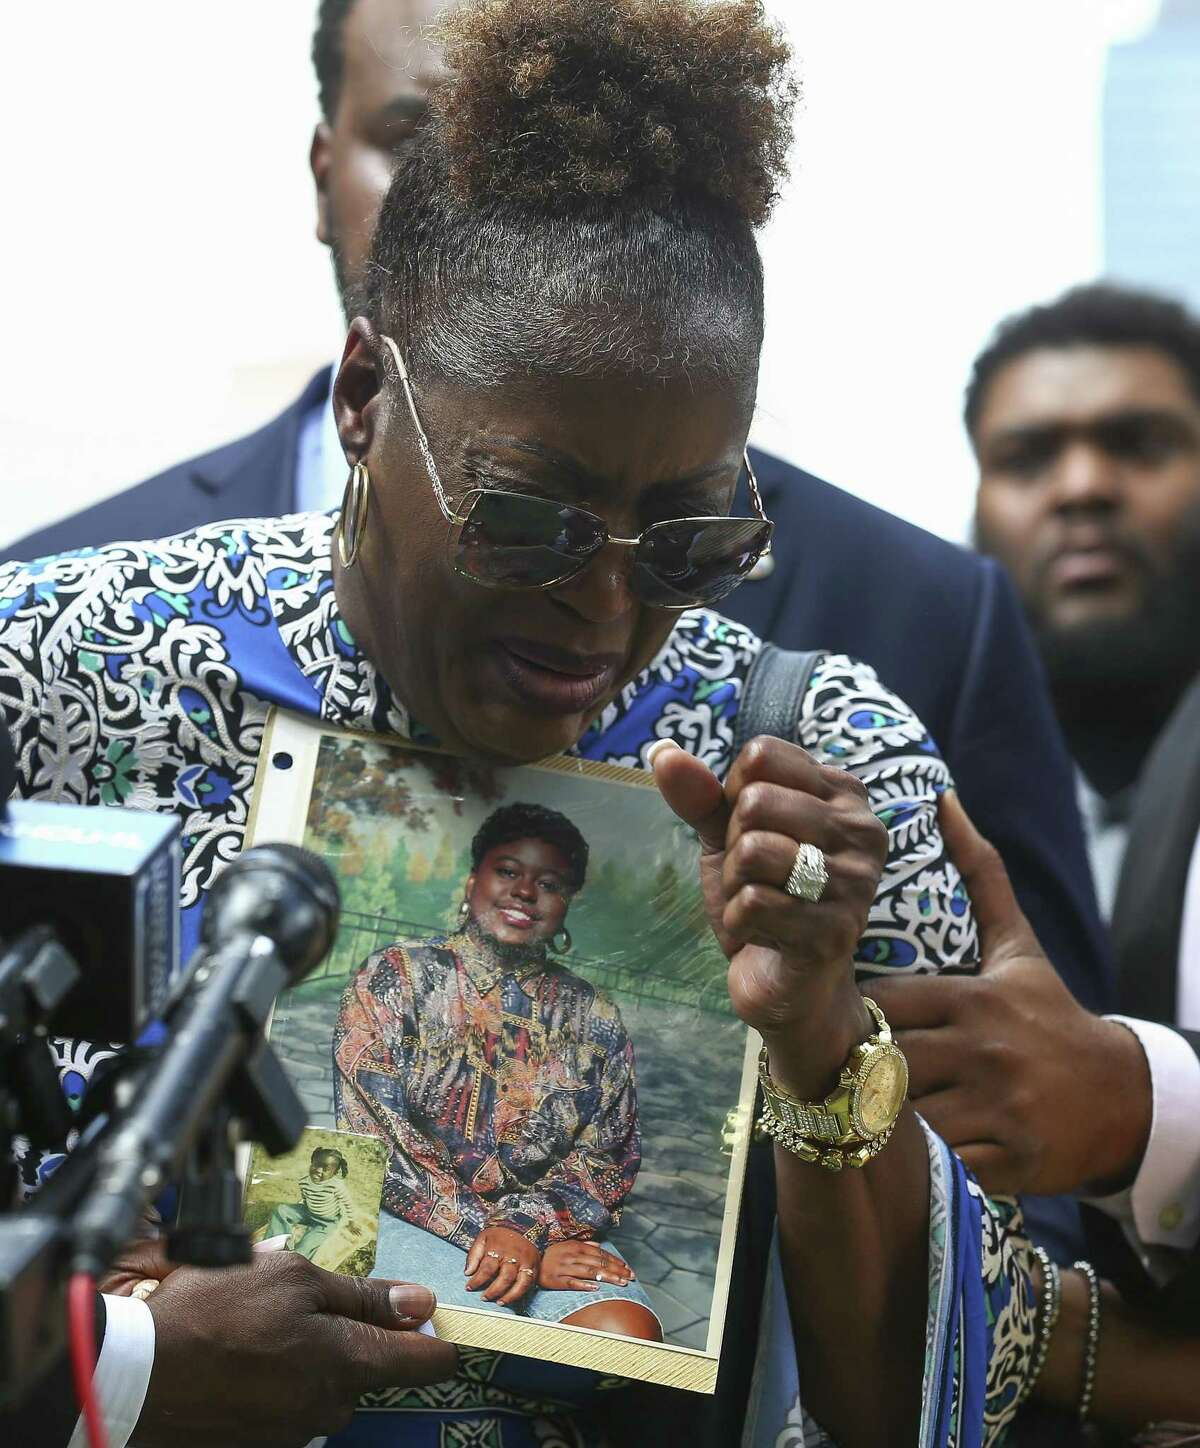 Antoinette Dorsey-James, center, cries while describing her late sister Pamela Turner during a press conference outside the Harris County Civil Court Thursday, May 16, 2019, in Houston. Turner was killed during an altercation with a Baytown Police Department officer Monday night at The Brixton Apartments complex she lived at in Baytown, Texas.